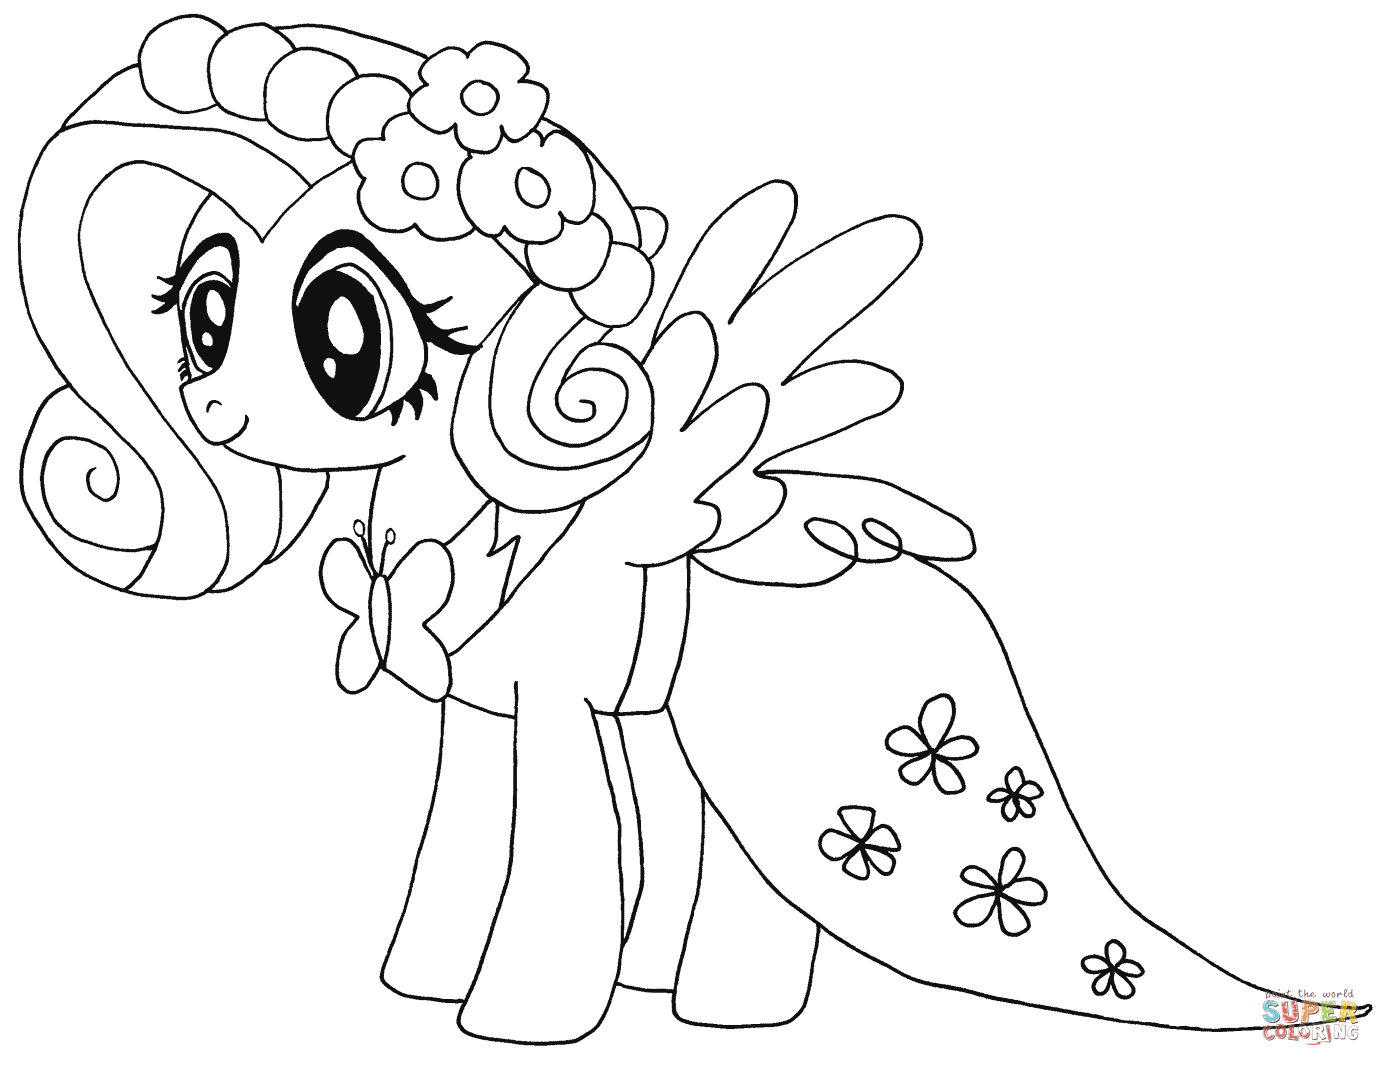 my little pony fluttershy from my little pony coloring page - Pony Coloring Pages